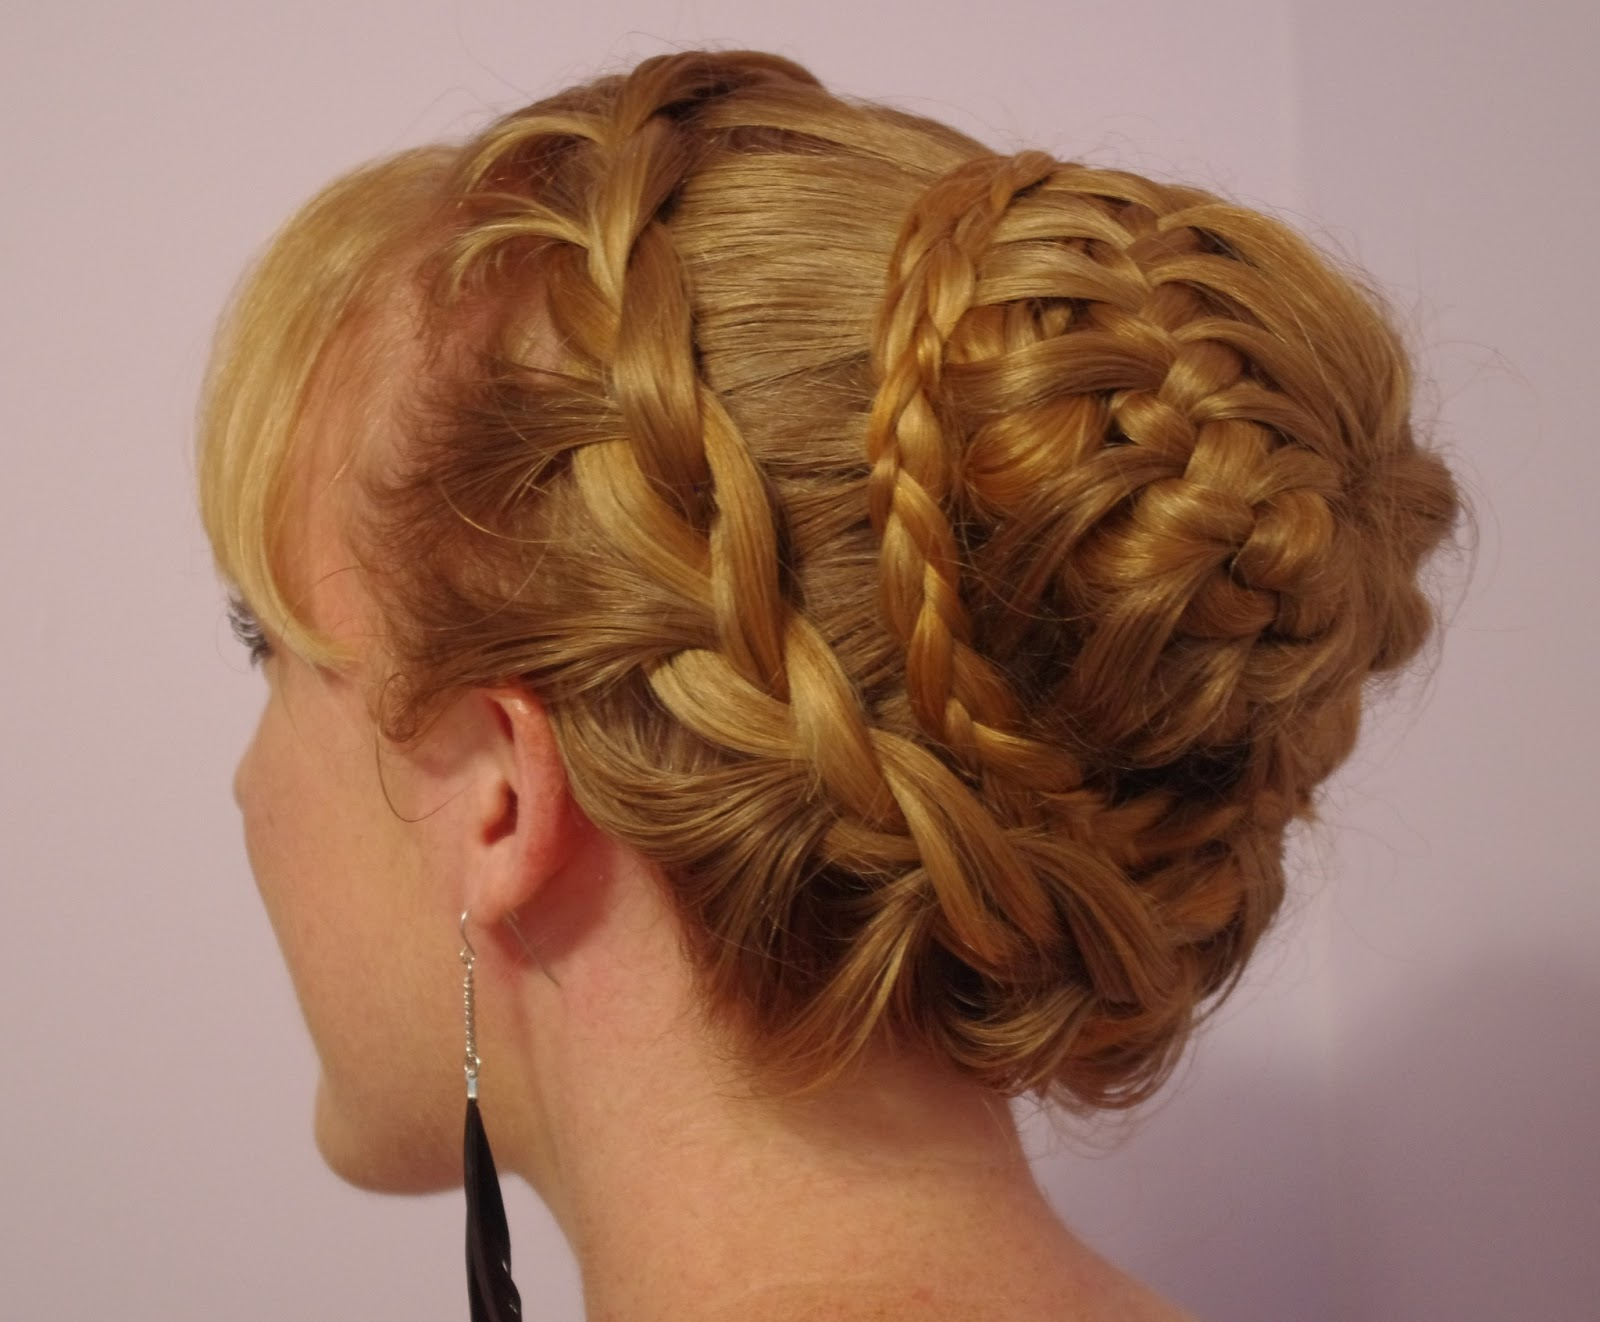 Braided Bun Hairstyles For Long Hair Notonlybeauty